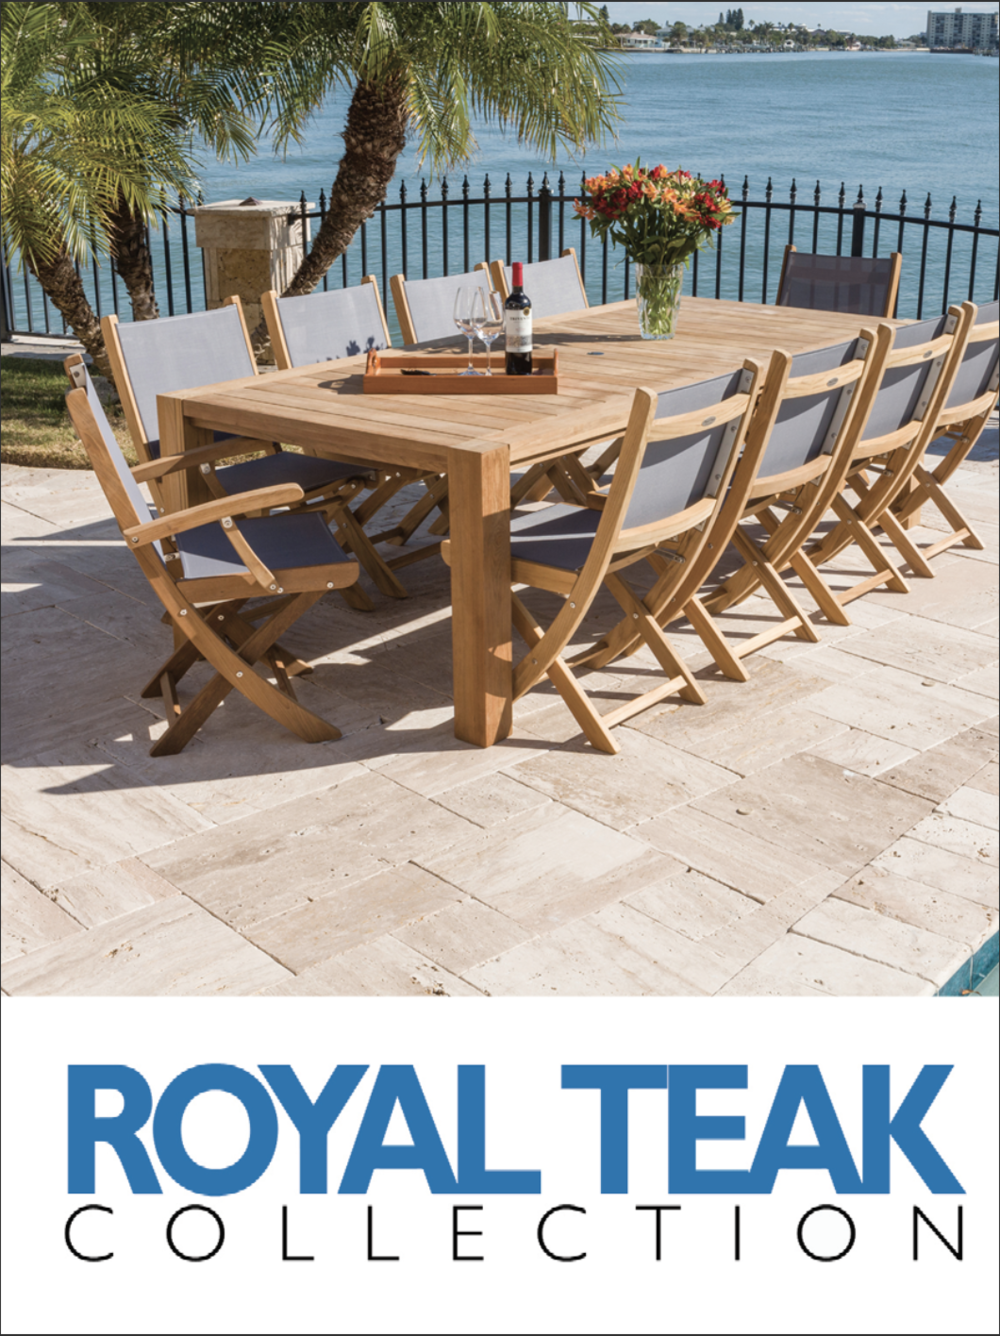 Want to see more Royal Teak? -